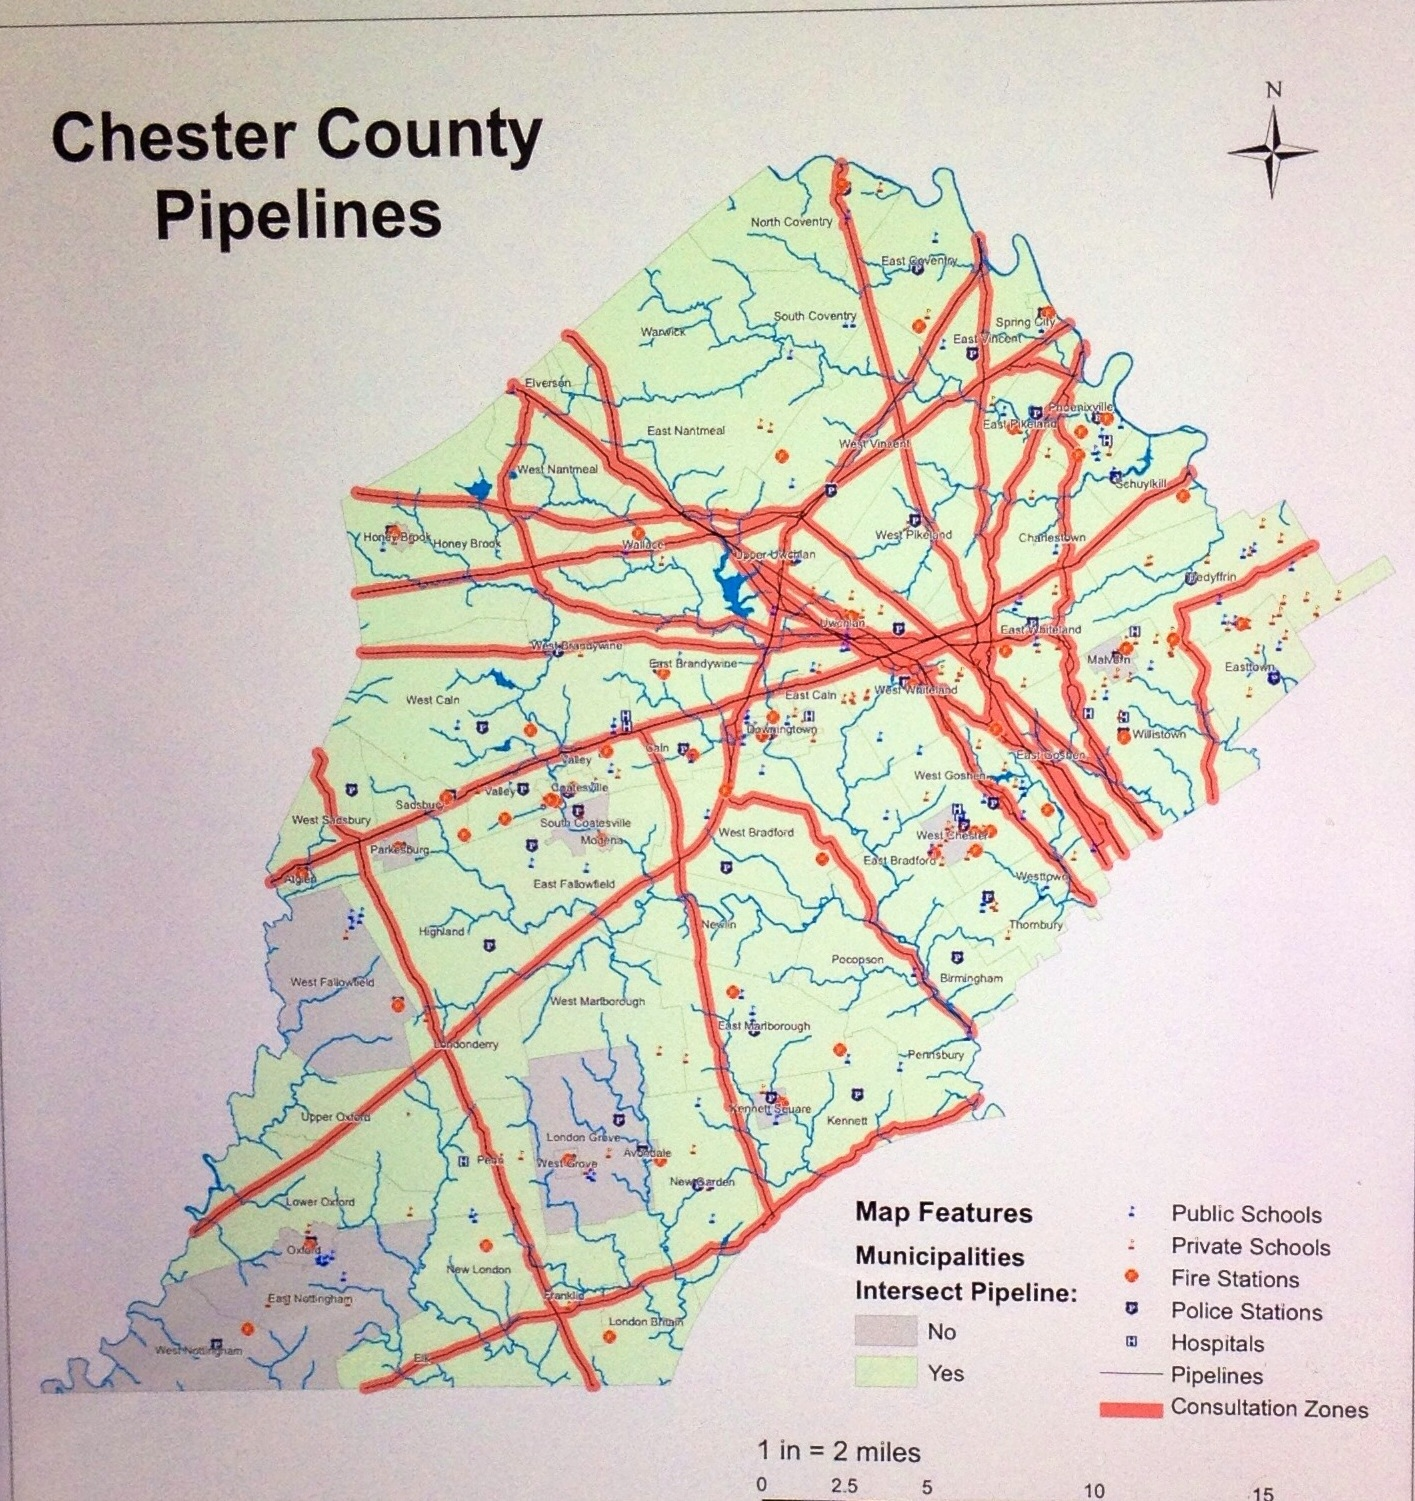 pipeline | chestercountyramblings on philadelphia county, map of sadsbury township, allegheny county, cumberland county, map of greater philadelphia region, berks county, map pa county, map of chester valley trail, delaware county, map of lititz, franklin county, map of sharon hill, map of haverford college, map of west jersey, battle of brandywine, map of king of prussia area, schuylkill county, map of penn state schuylkill, map of caln township, lancaster county, map of muhlenberg township, adams county, bucks county, map of the philadelphia region, map of west vincent township, map of spring city, fulton county, montgomery county, west chester, york county, map of drexel hill, map of marsh creek state park, map of west goshen, dauphin county, map of arcadia university, map of elkins park,